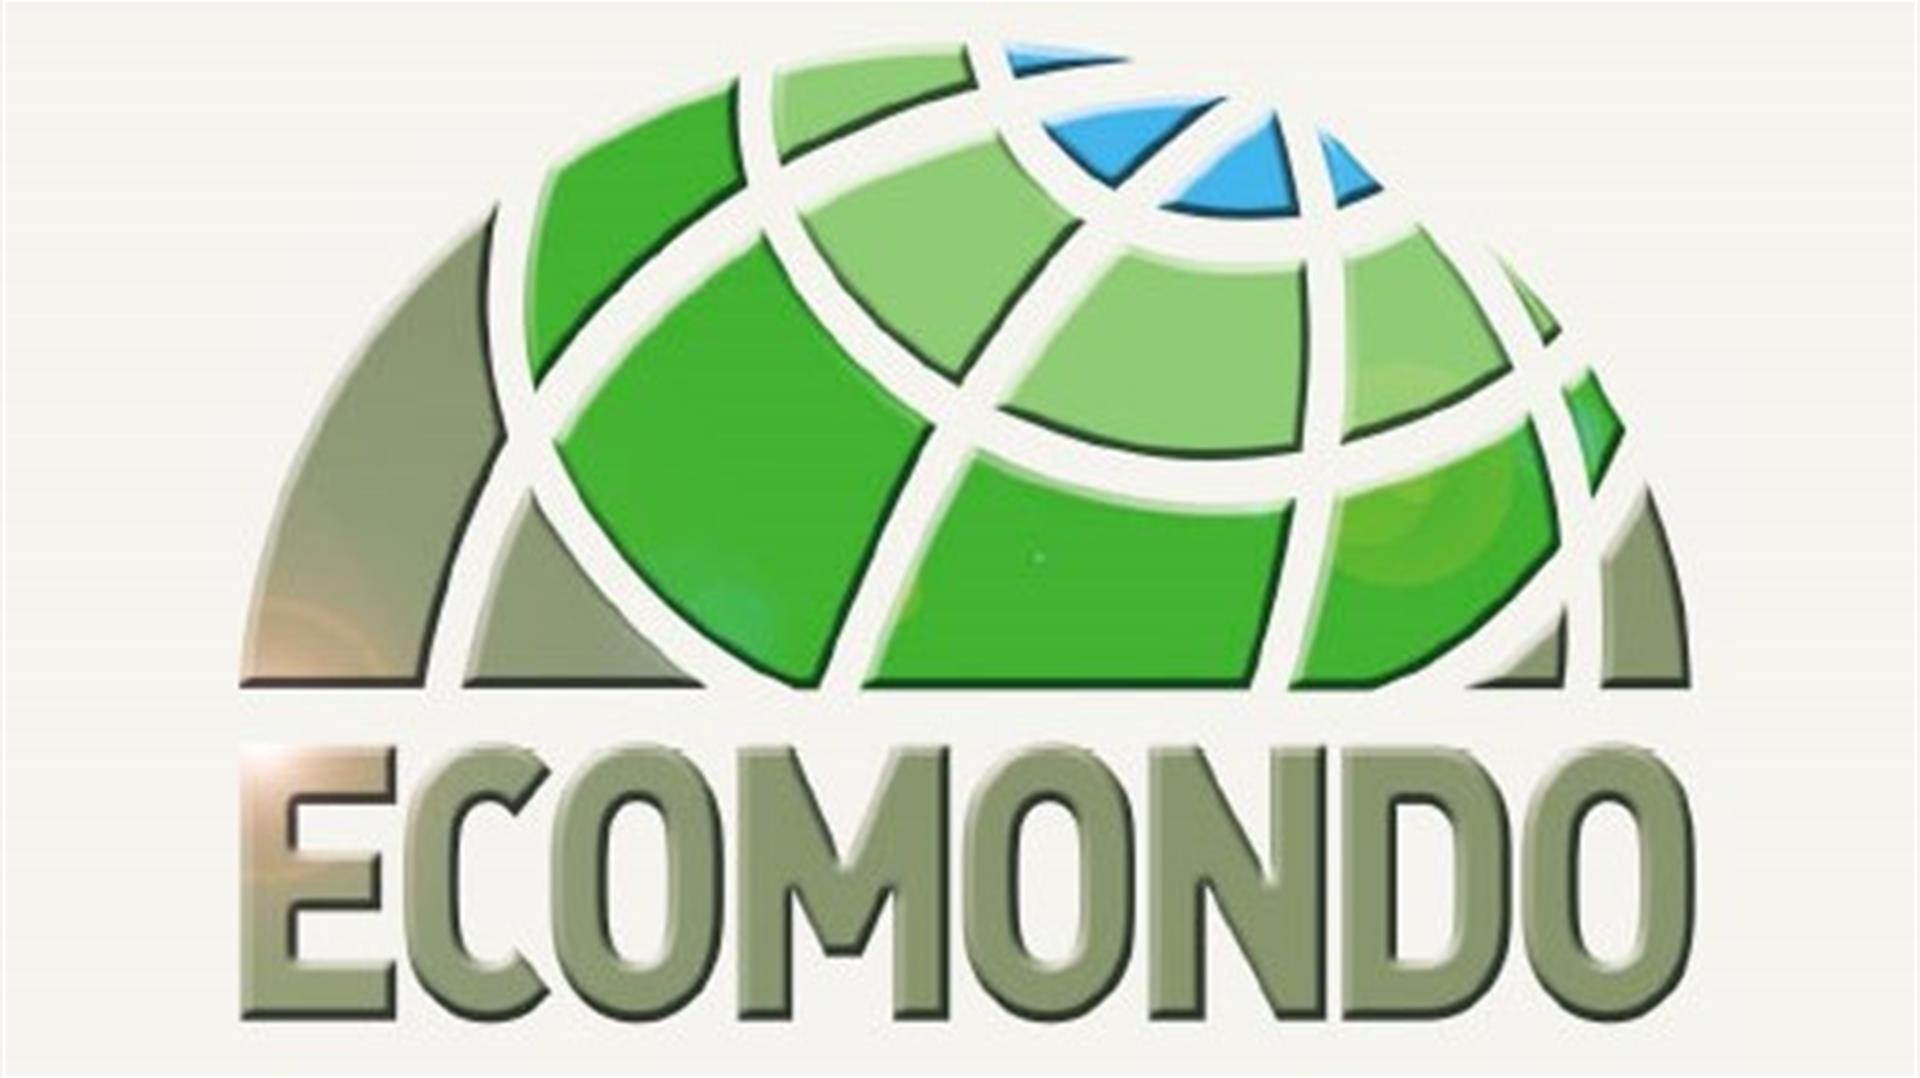 Ecomondo. The Green Technologies expo